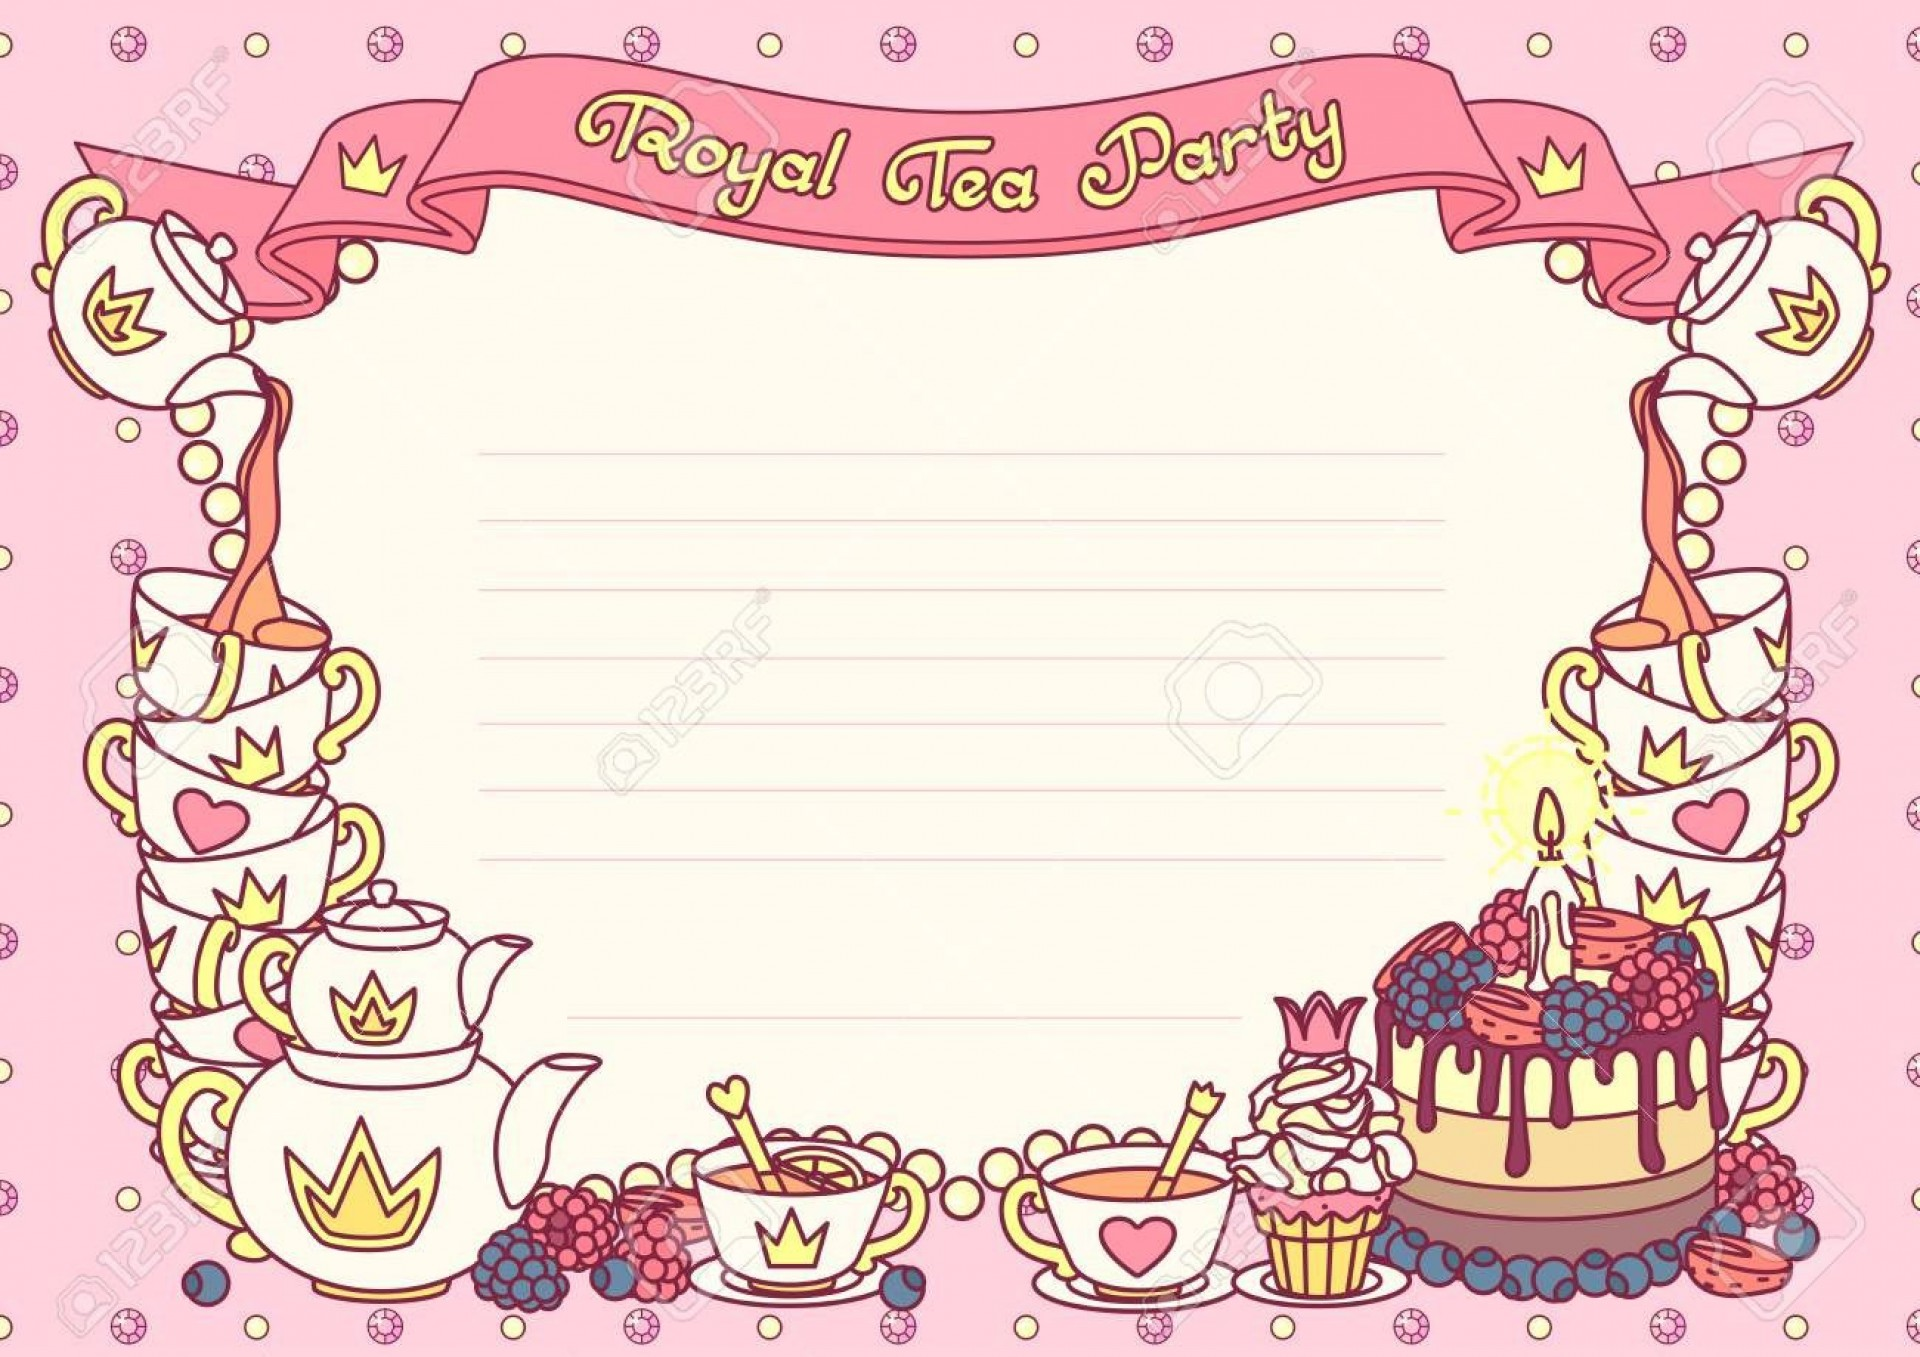 005 Rare Tea Party Invitation Template Image  Card Victorian Wording For Bridal Shower1920